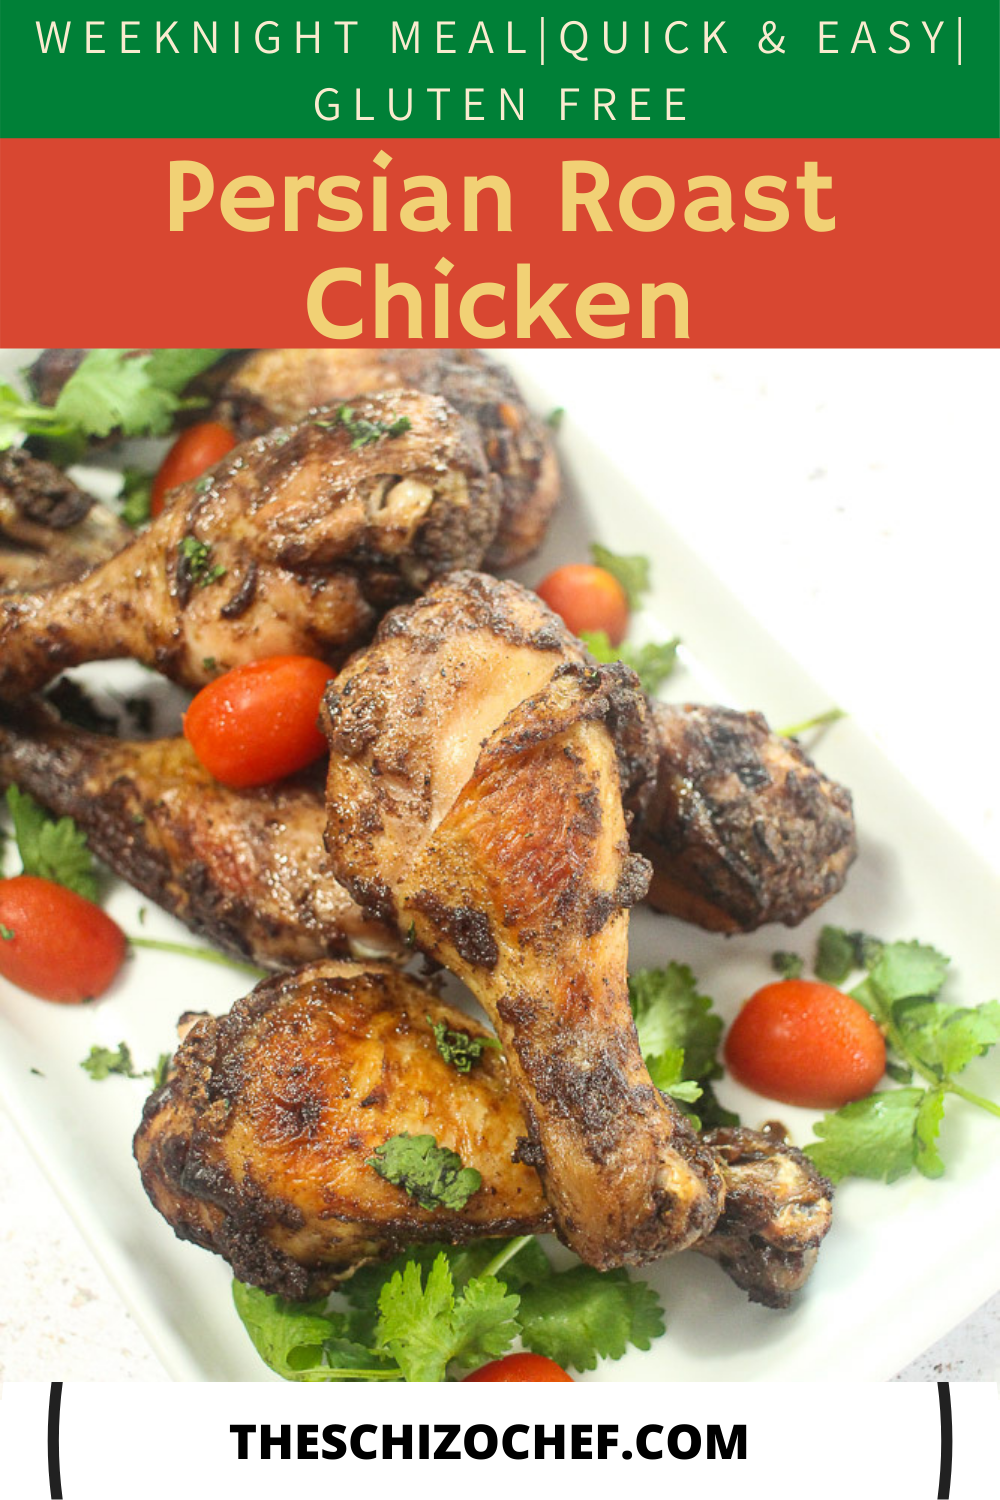 plate of chicken with text